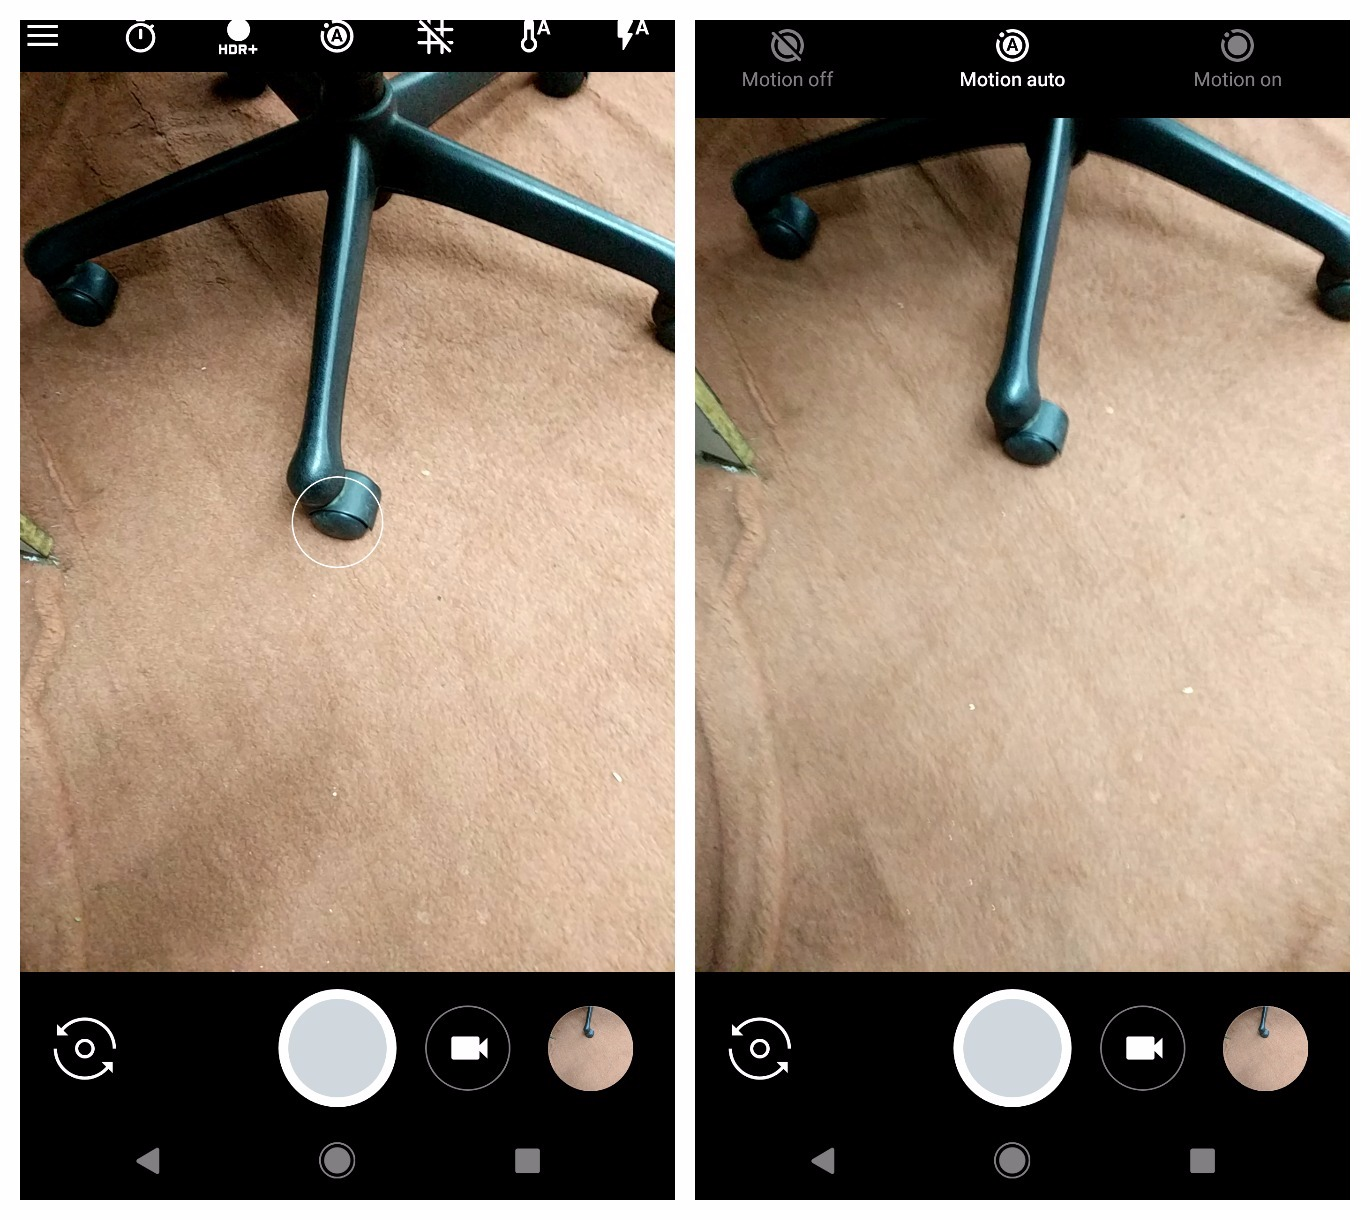 APK] Google Camera 5 1 App From Pixel 2 And Camera 5 0 With